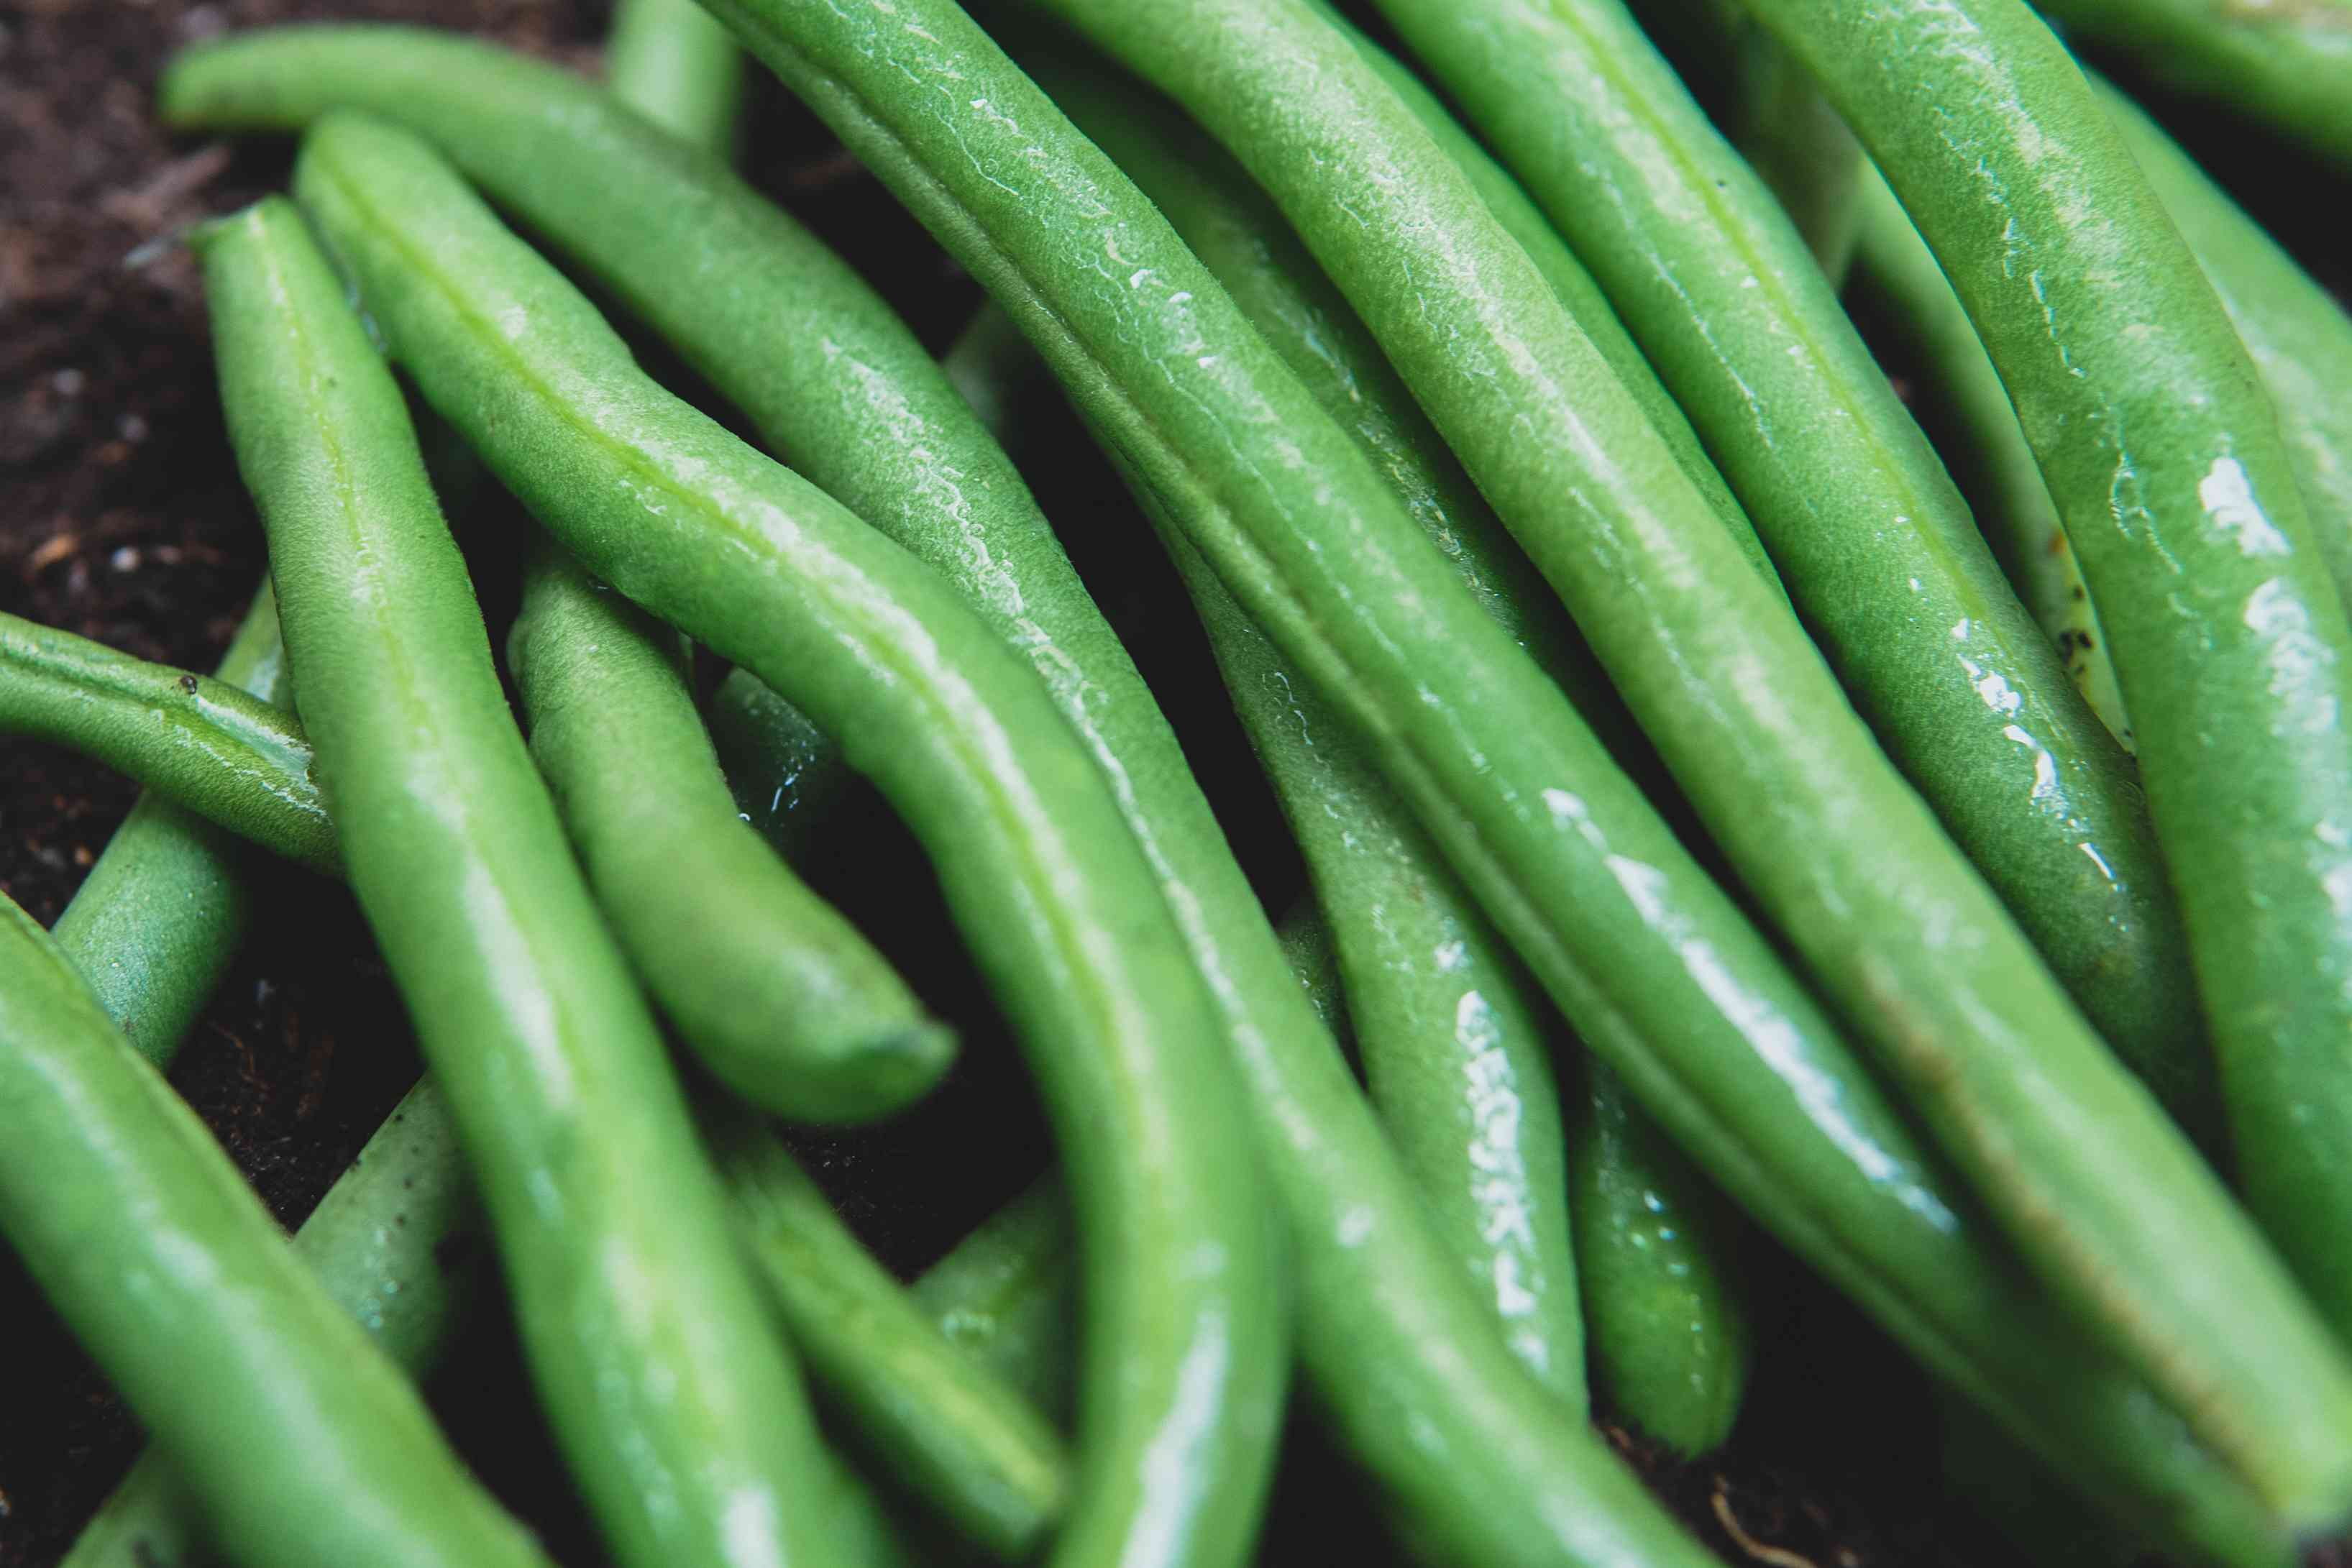 Wet green beans piled together on black dirt.